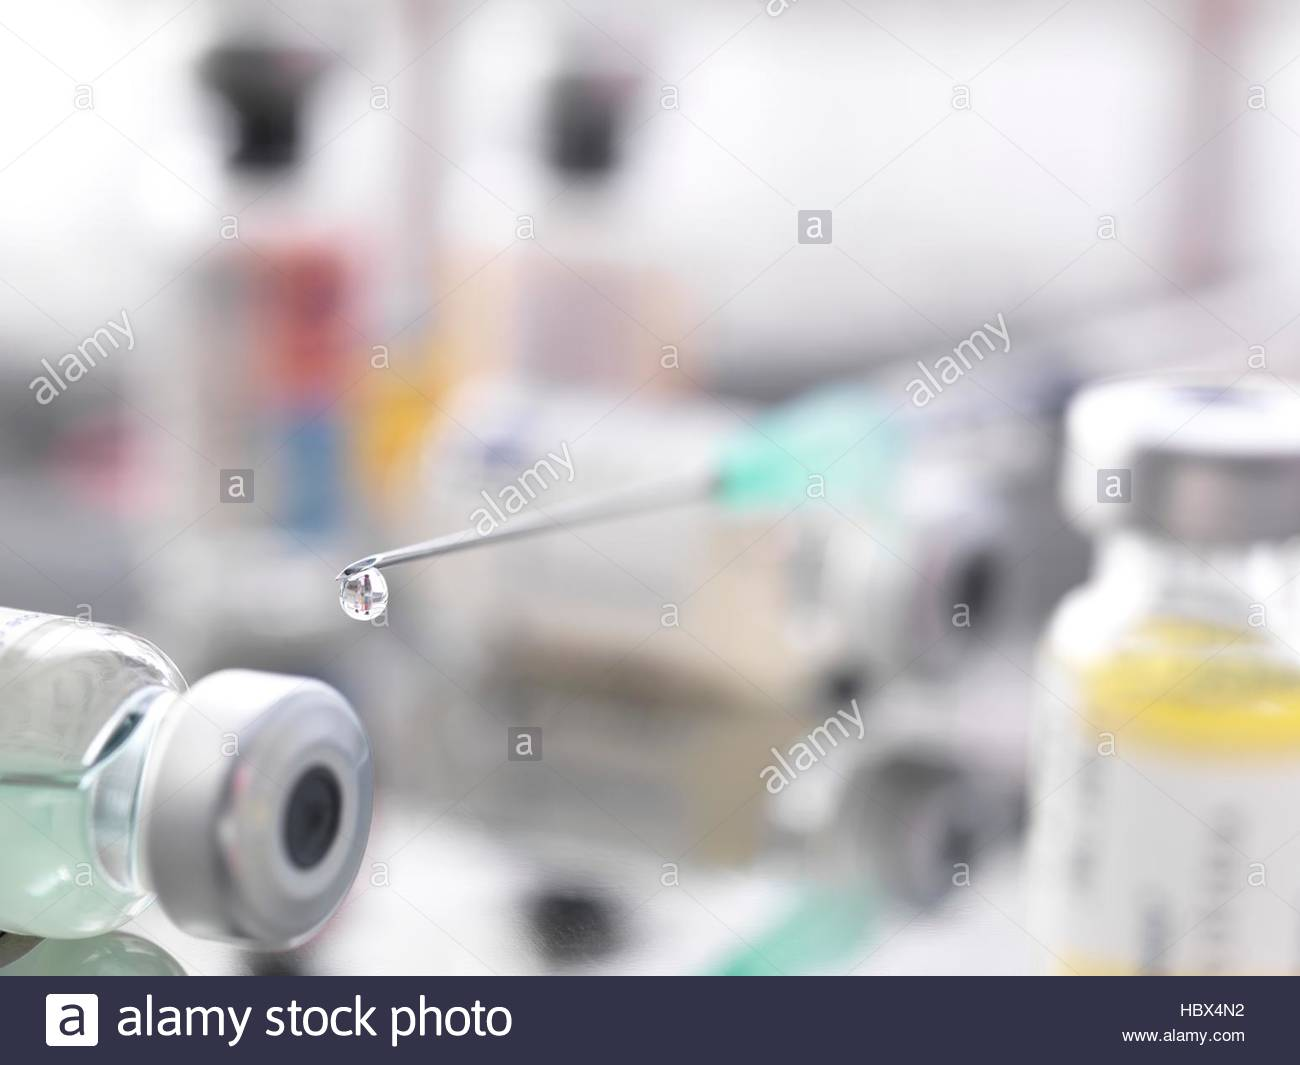 Syringe, vaccines and drugs vials. - Stock Image